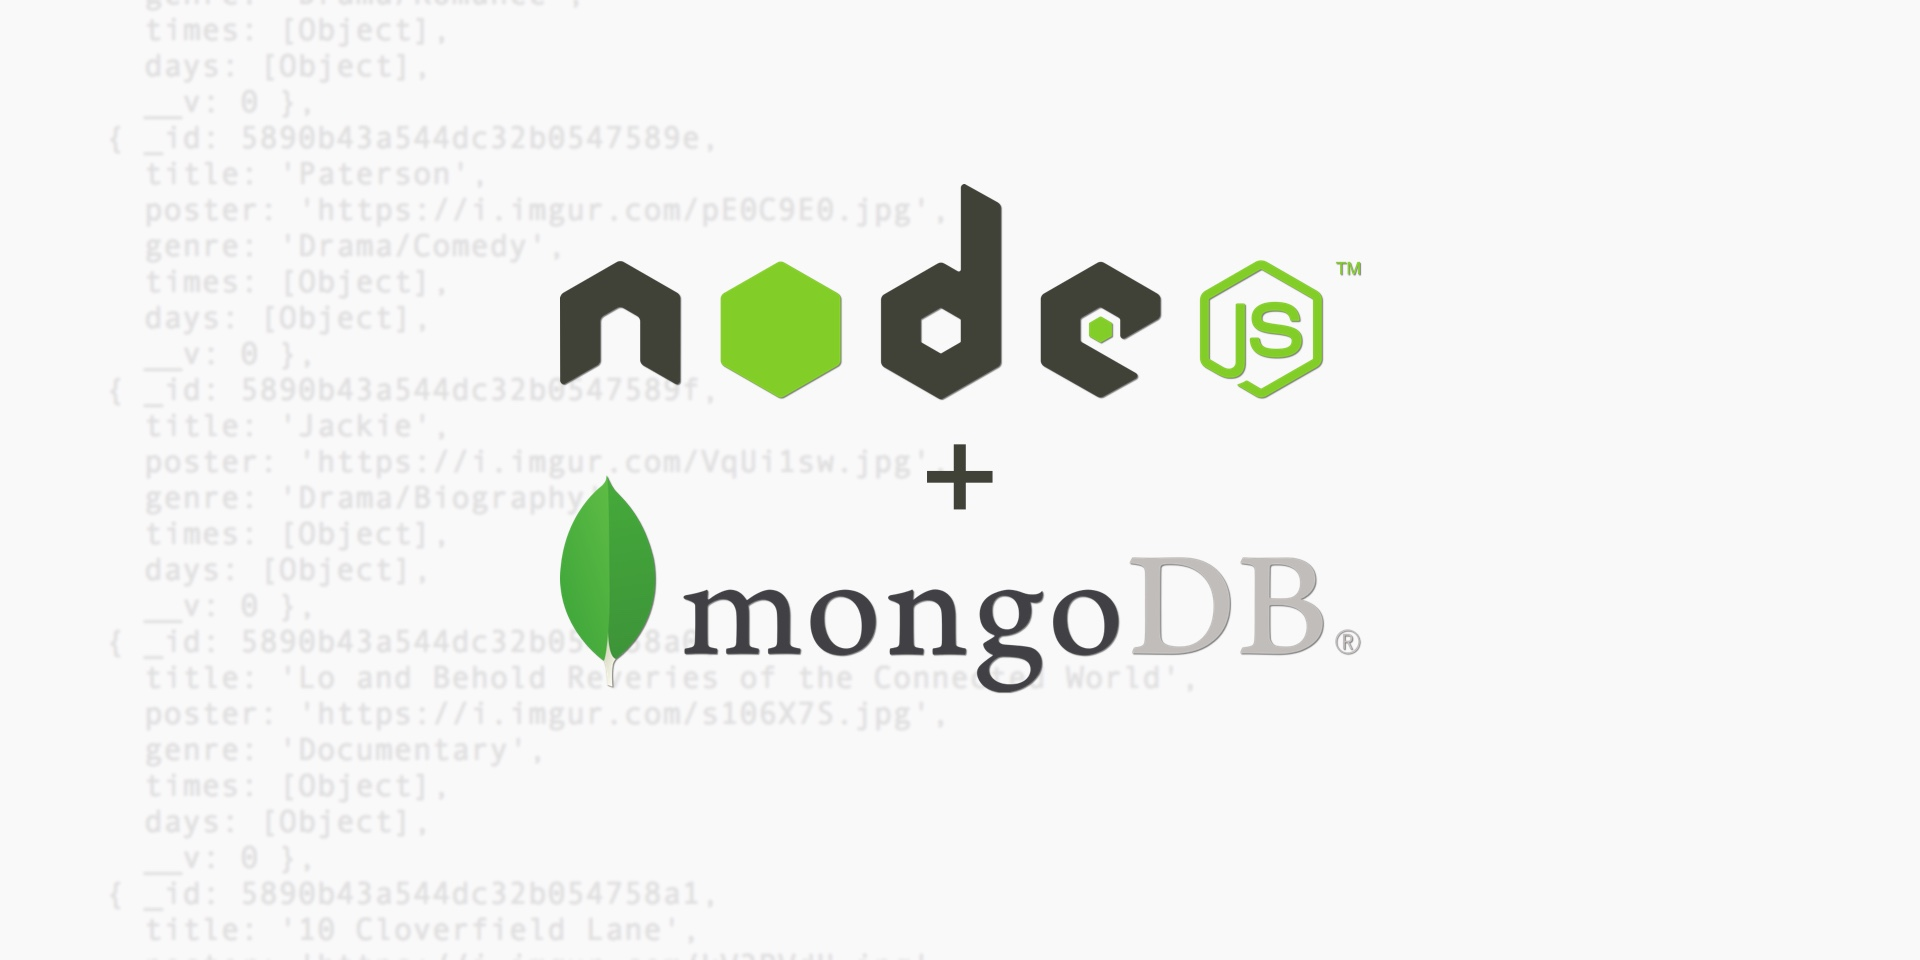 Api Backend With Node Js Express And Mongodb For React Native Apps